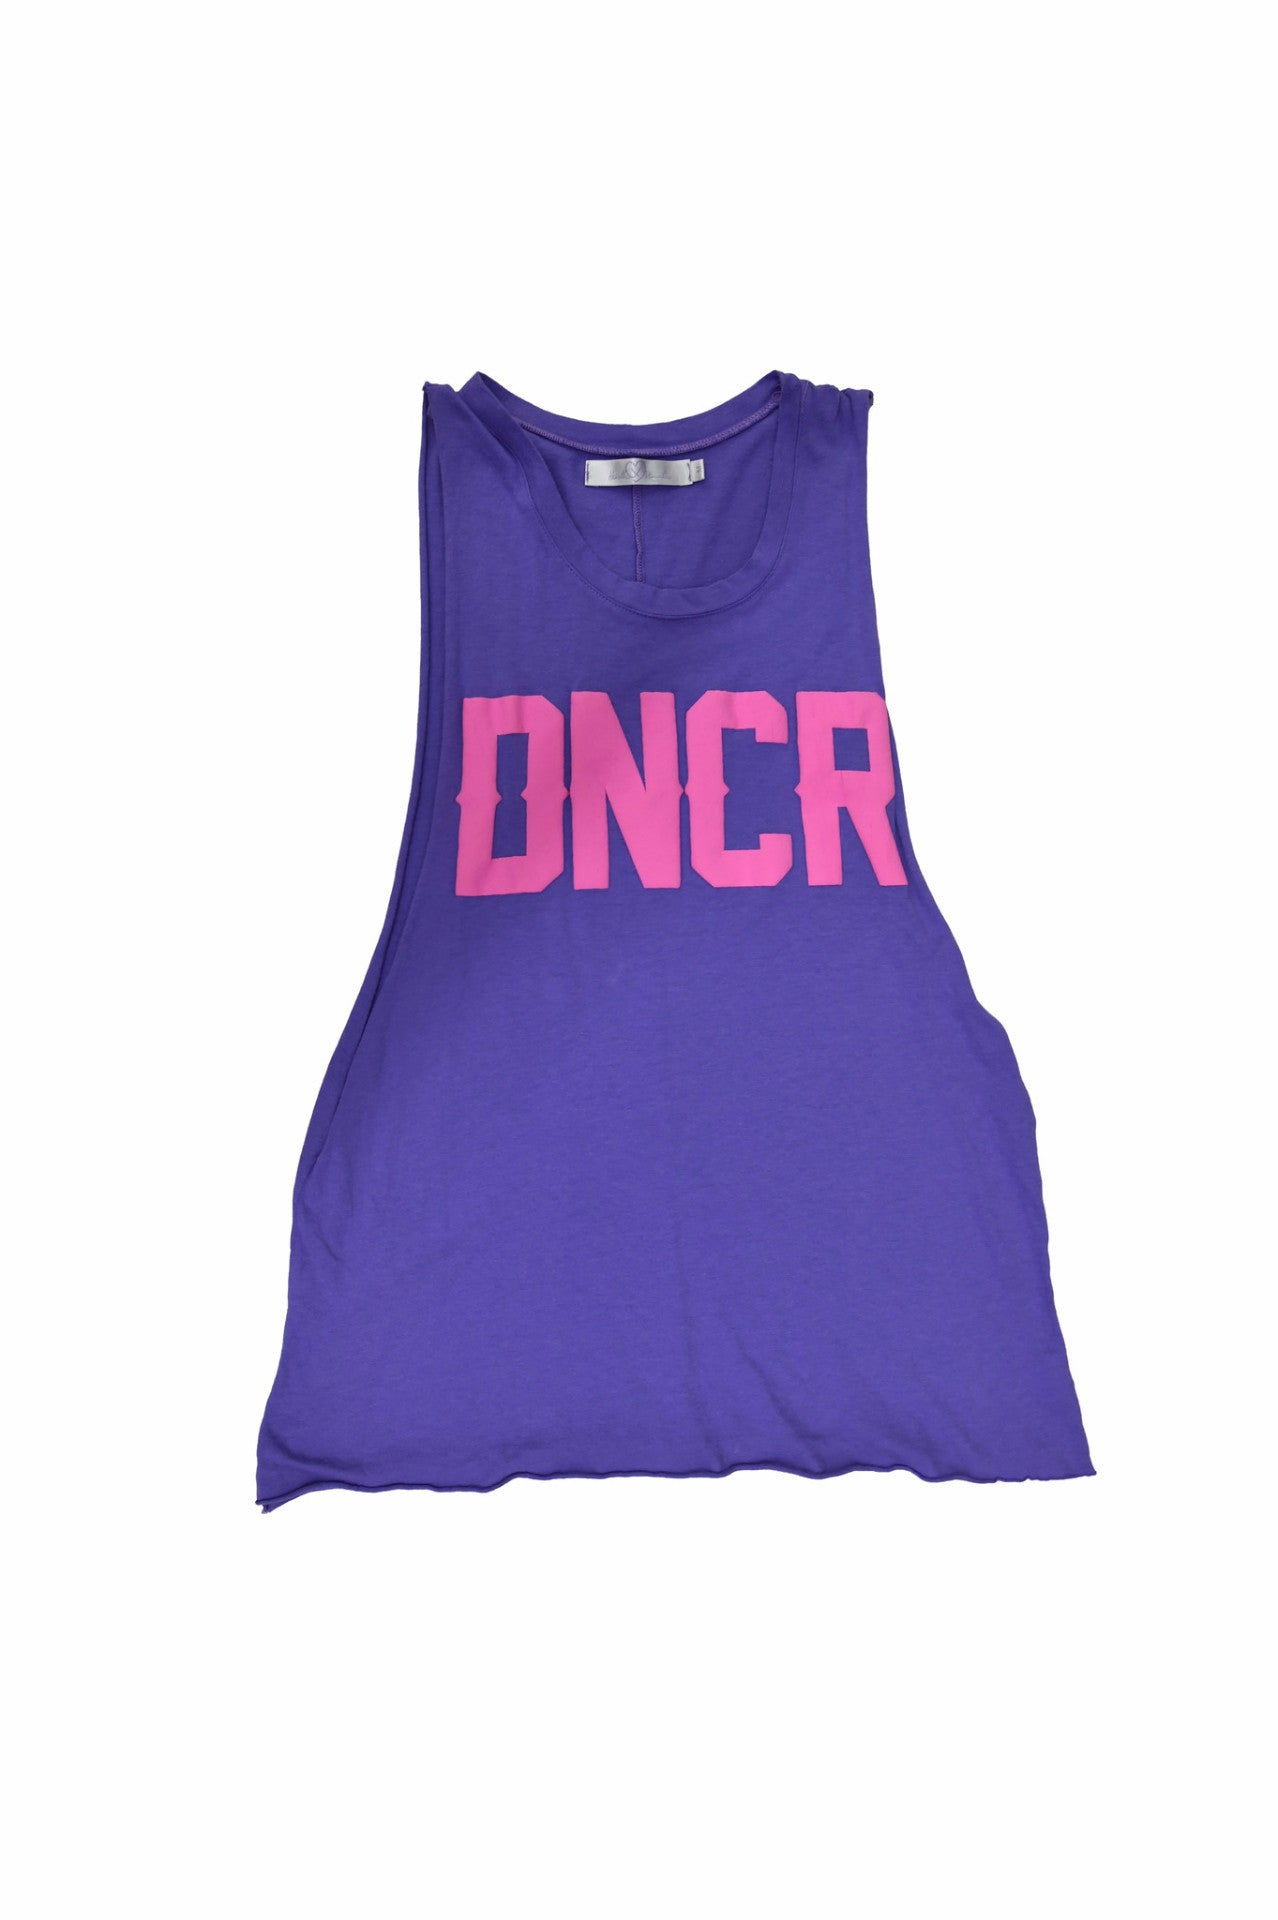 Heartless Romantics DNCR tank